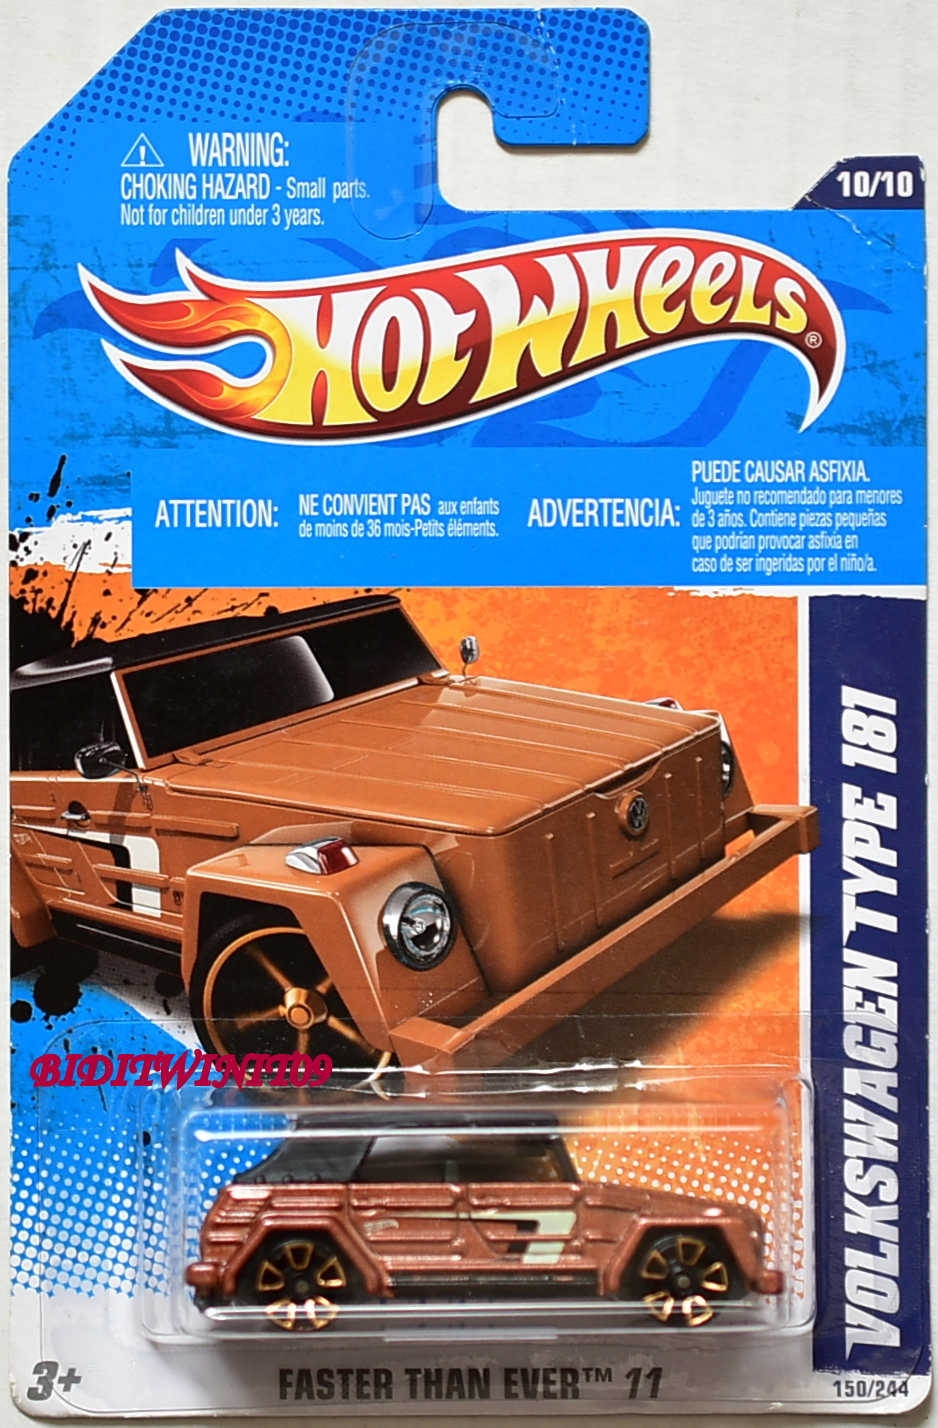 HOT WHEELS 2011 FASTER THAN EVER VOLKSWAGEN TYPE 181 #10/10